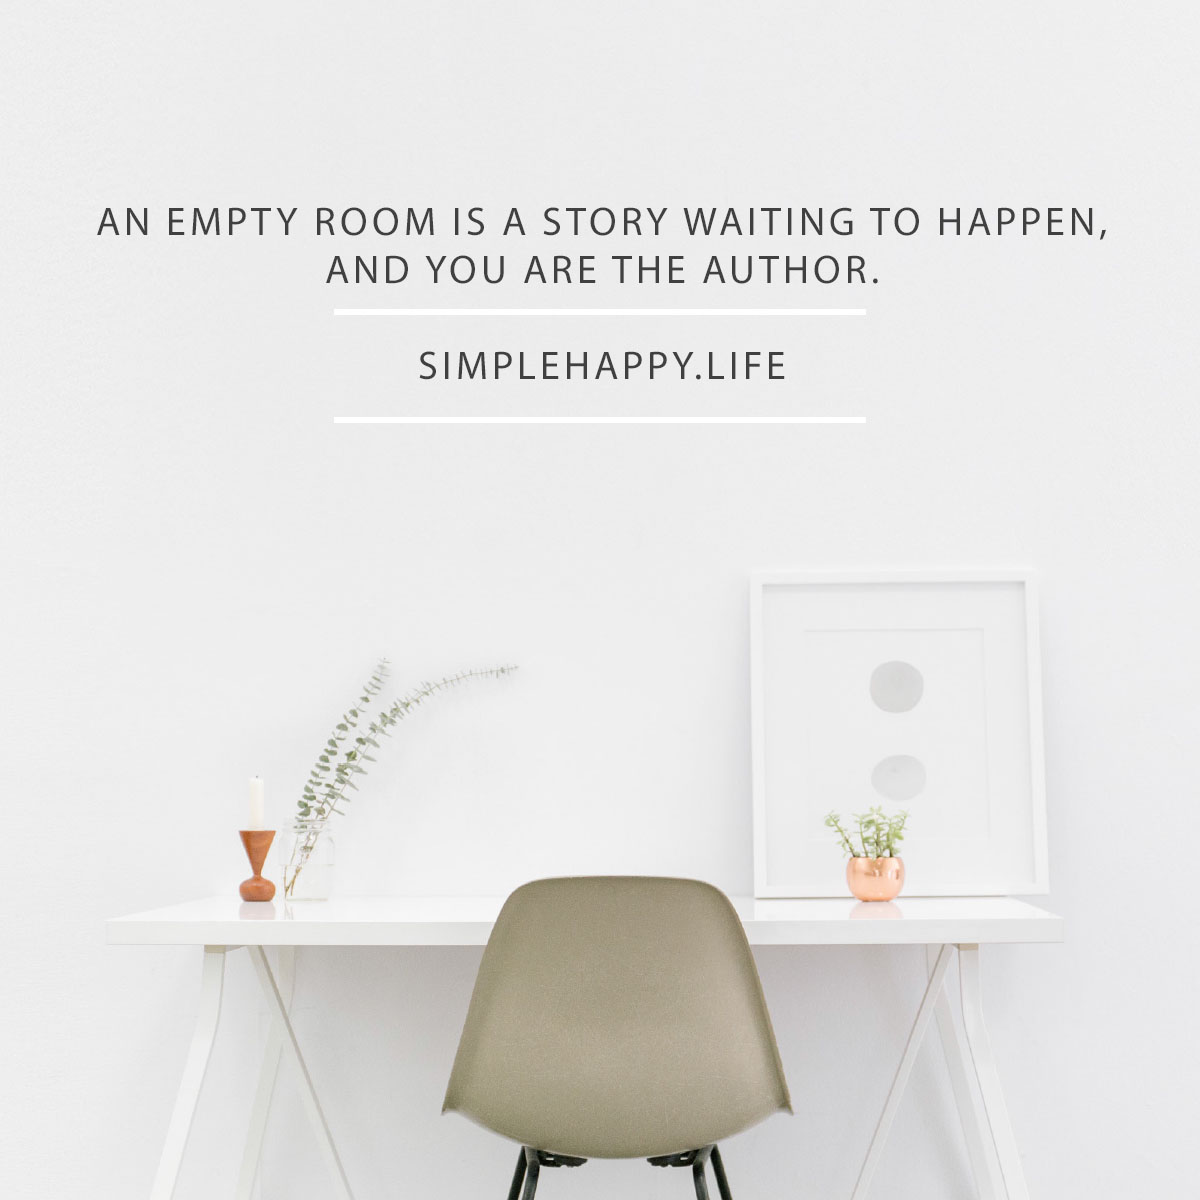 Simple is beautiful. Simple allows us to breath, think, create, and be free. When we remove all the extra we find out what and who is actually important to us. Once we get rid of all the garbage cluttering our lives we get peace. If we want to achieve our goals this year we must get serious about removing all the extras; the extra stuff, extra (often unnecessary) time commitments, the long to do lists that never seem to end. We just need to take a look at life and put our priorities first. Check in with tomorrows blog post to see just how to do that and to give yourself the credit that you deserve for all the stuff that you continue to get done.